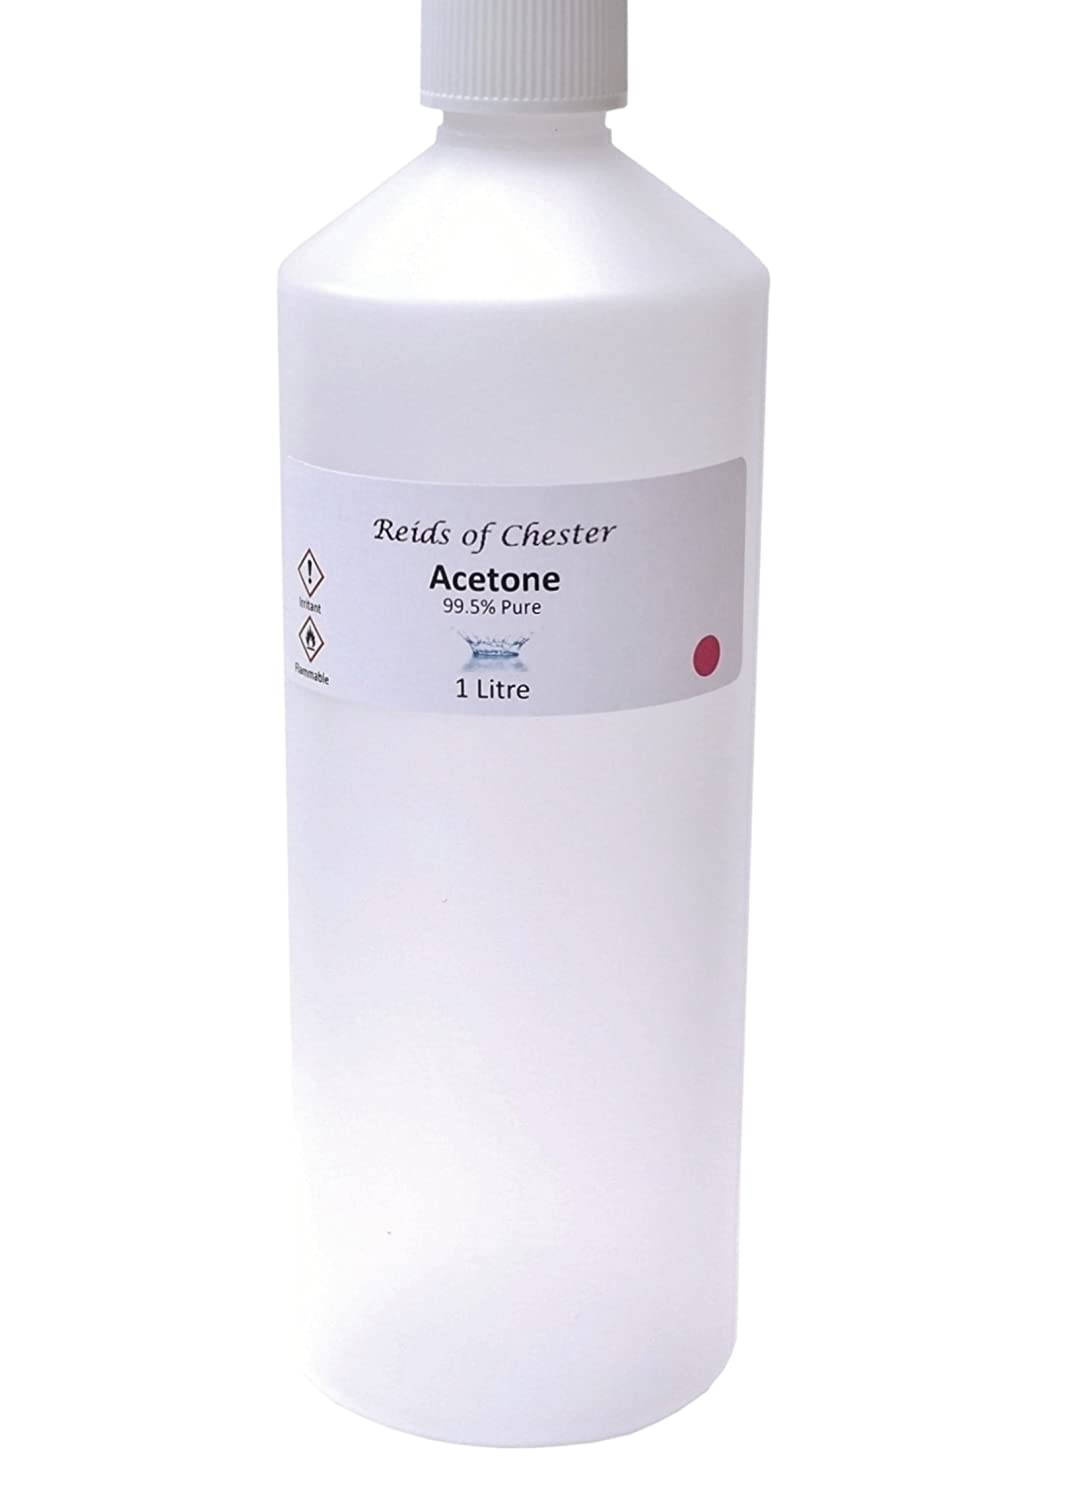 1 Litre Pure Acetone, Nail Polish Remover and Acrylic Nail Remover, Salon Grade from Reids of Chester